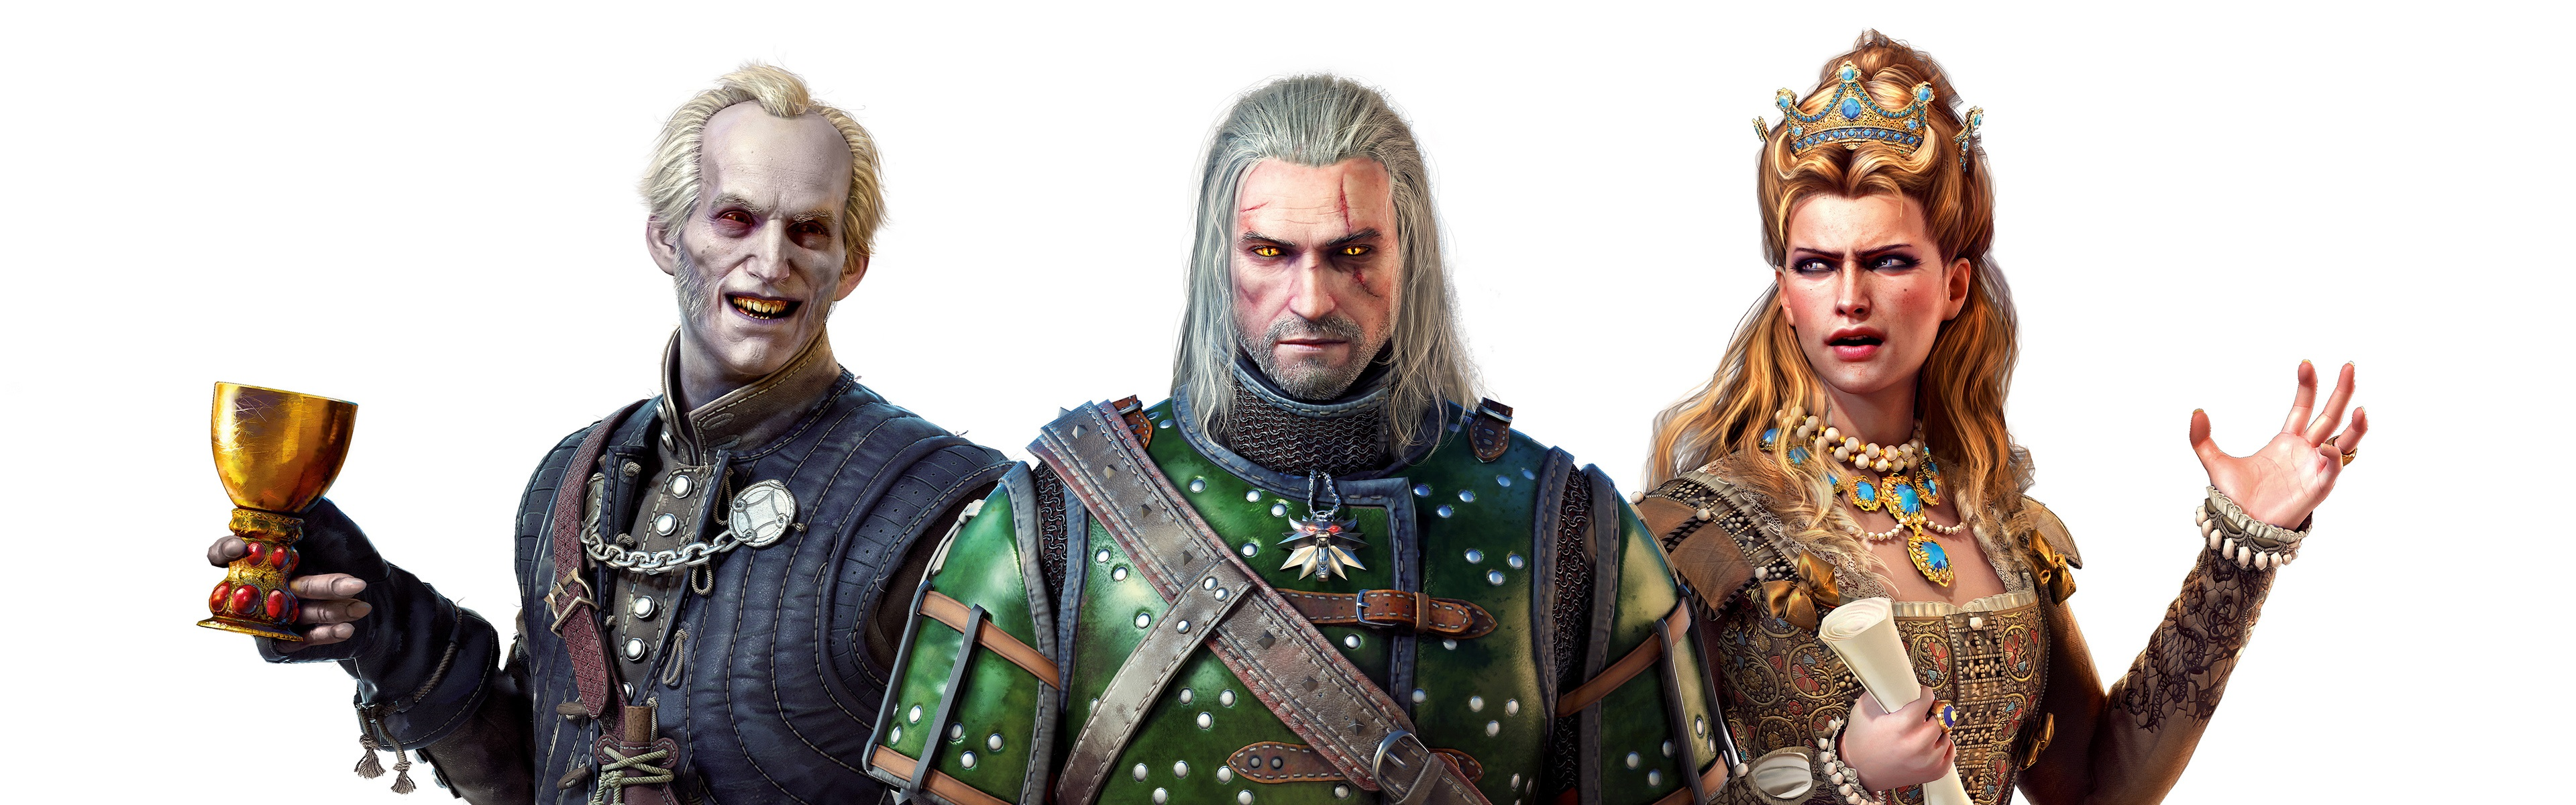 The Witcher 3 Wild Hunt Blood And Wine 1080x1920 Iphone 8 7 6 6s